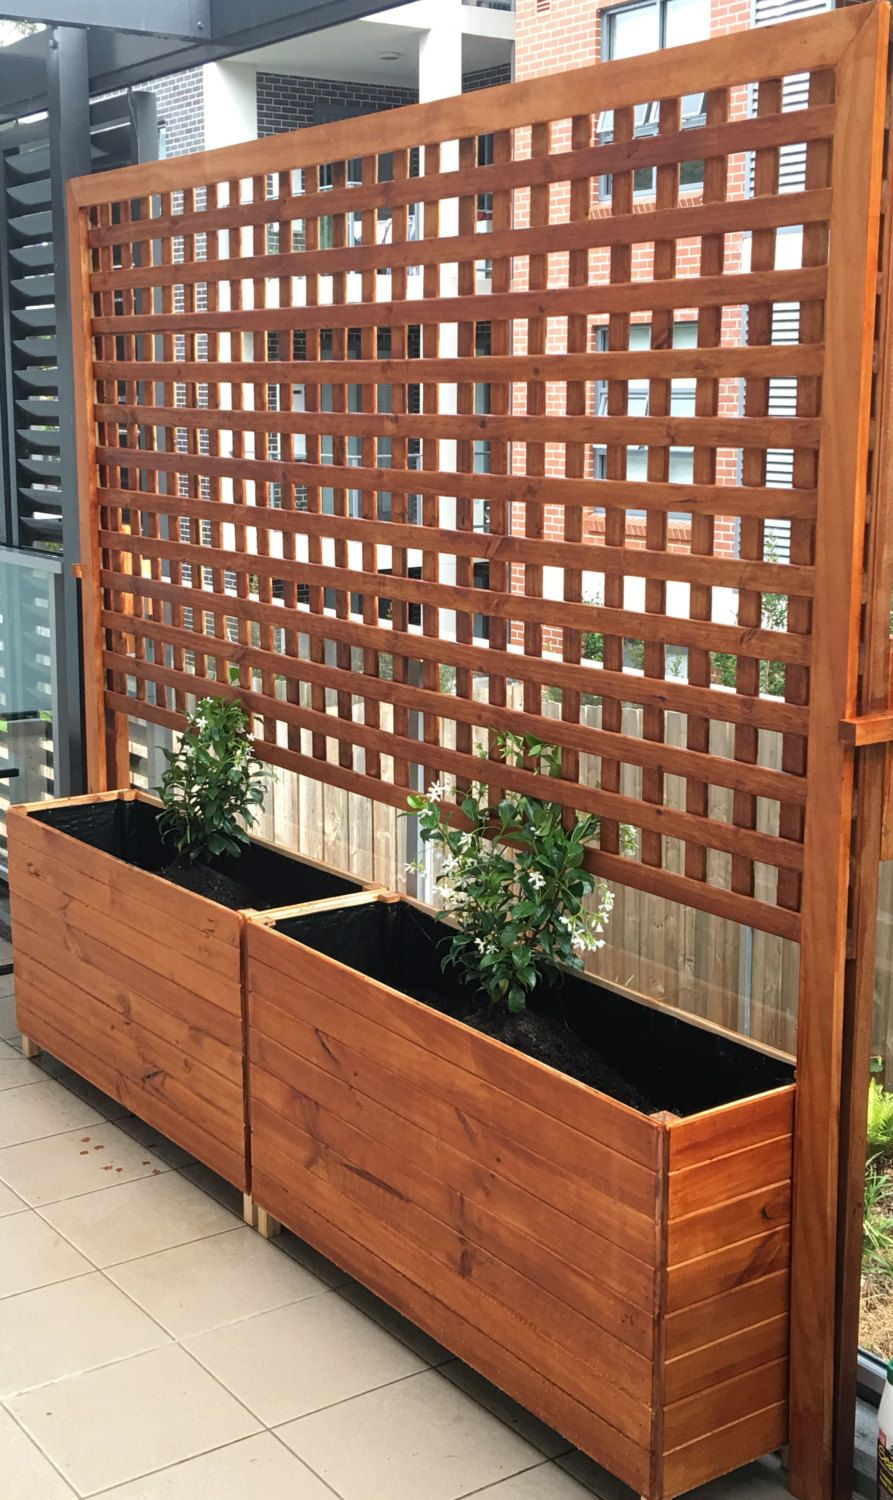 Planter box sturdy and durable planter boxes with lining to retain